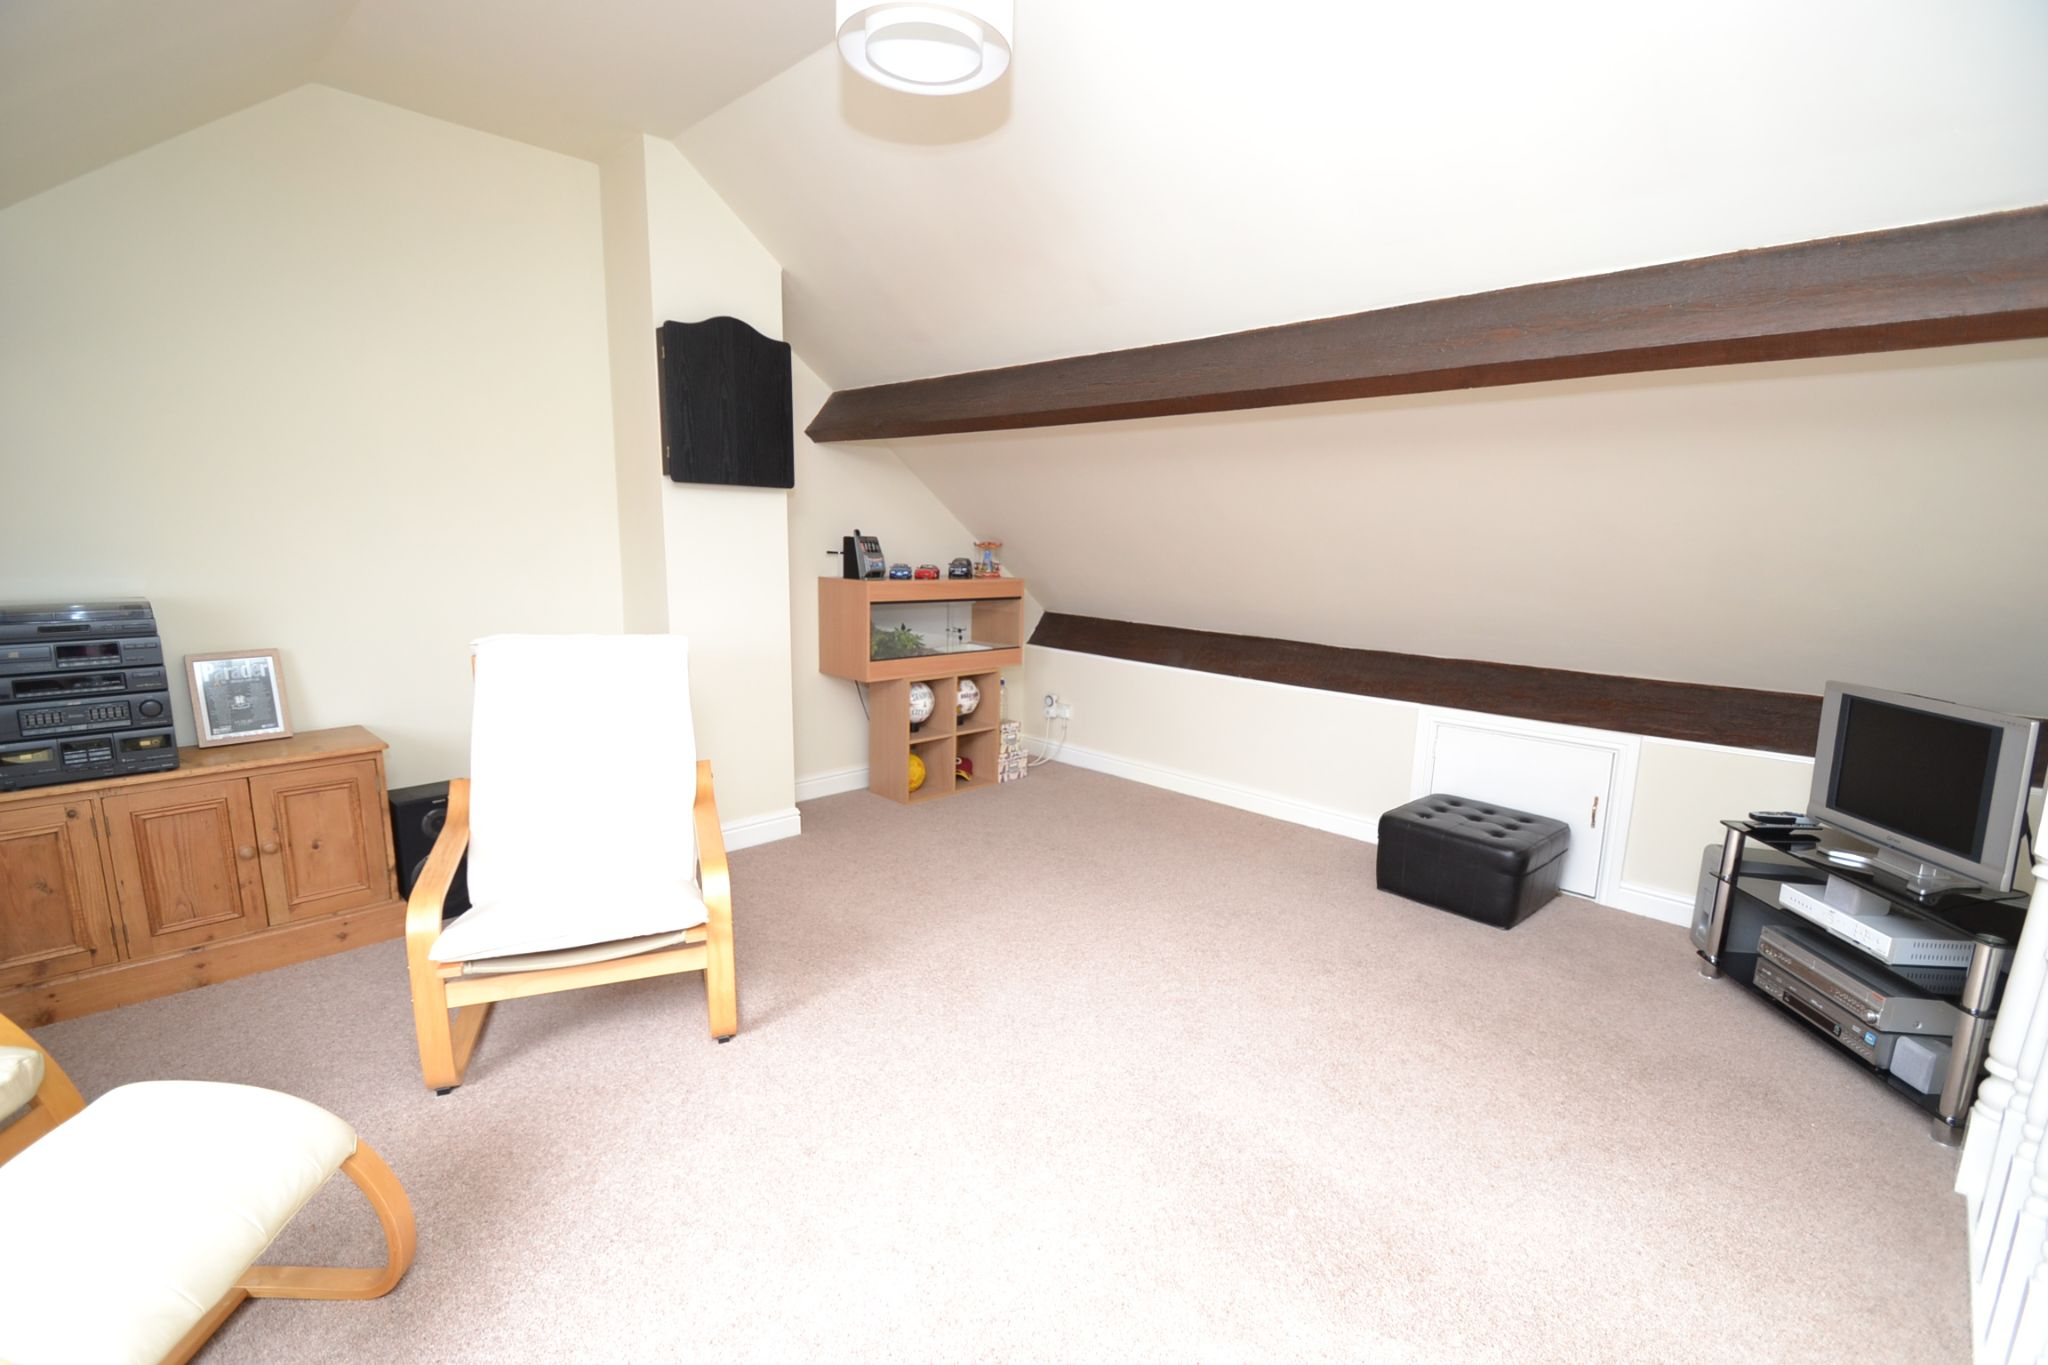 3 Bedroom Semi-detached House For Sale - Photograph 17